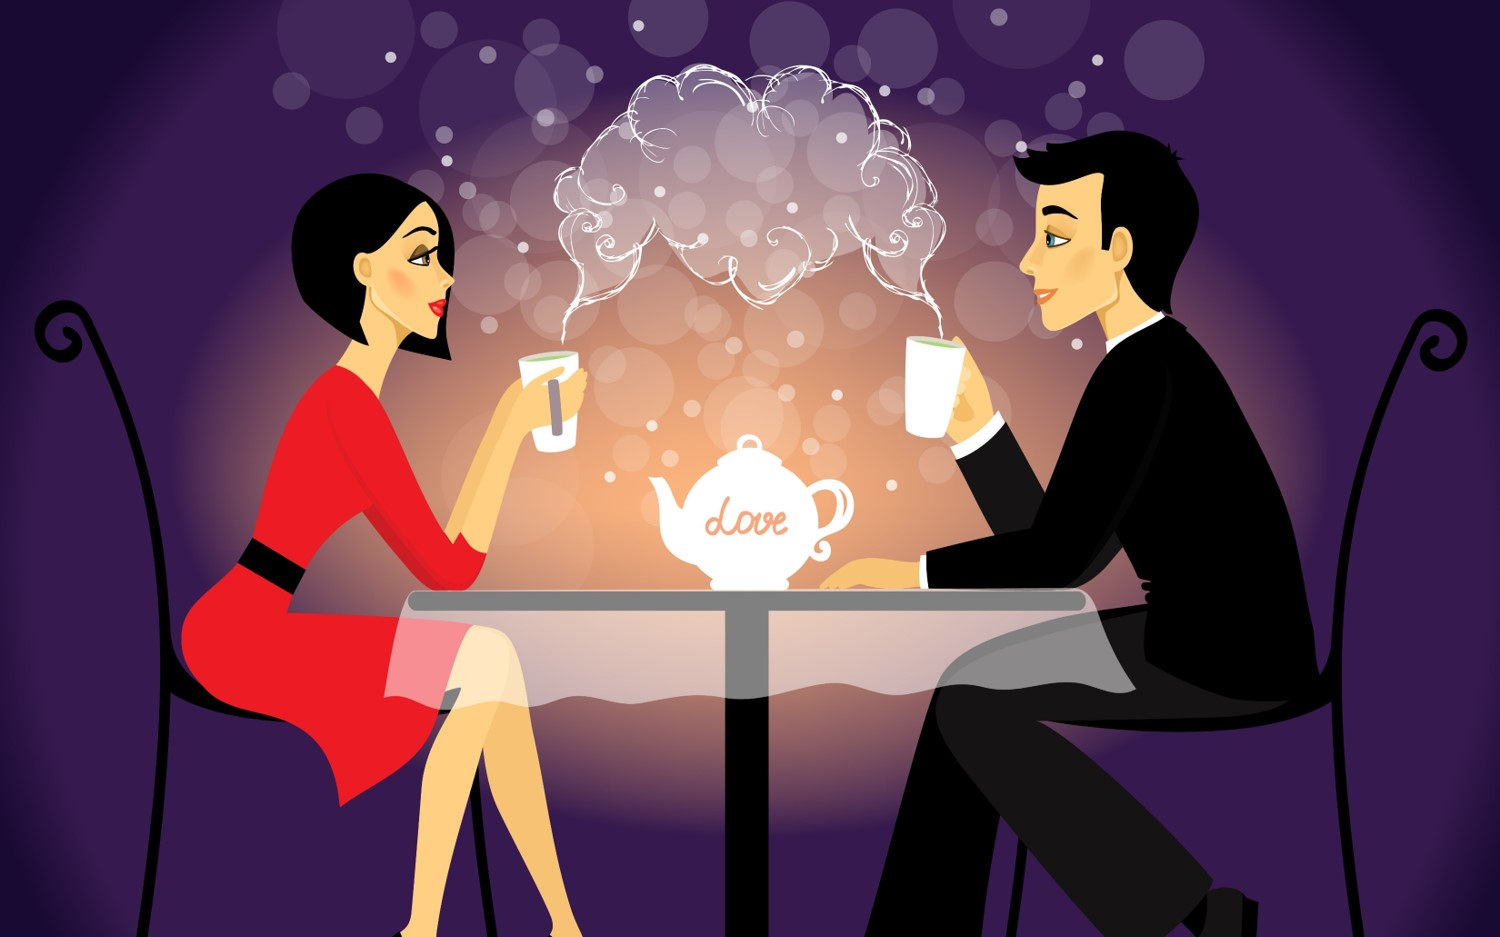 a TEA DATE WORKS BETTER,not booze